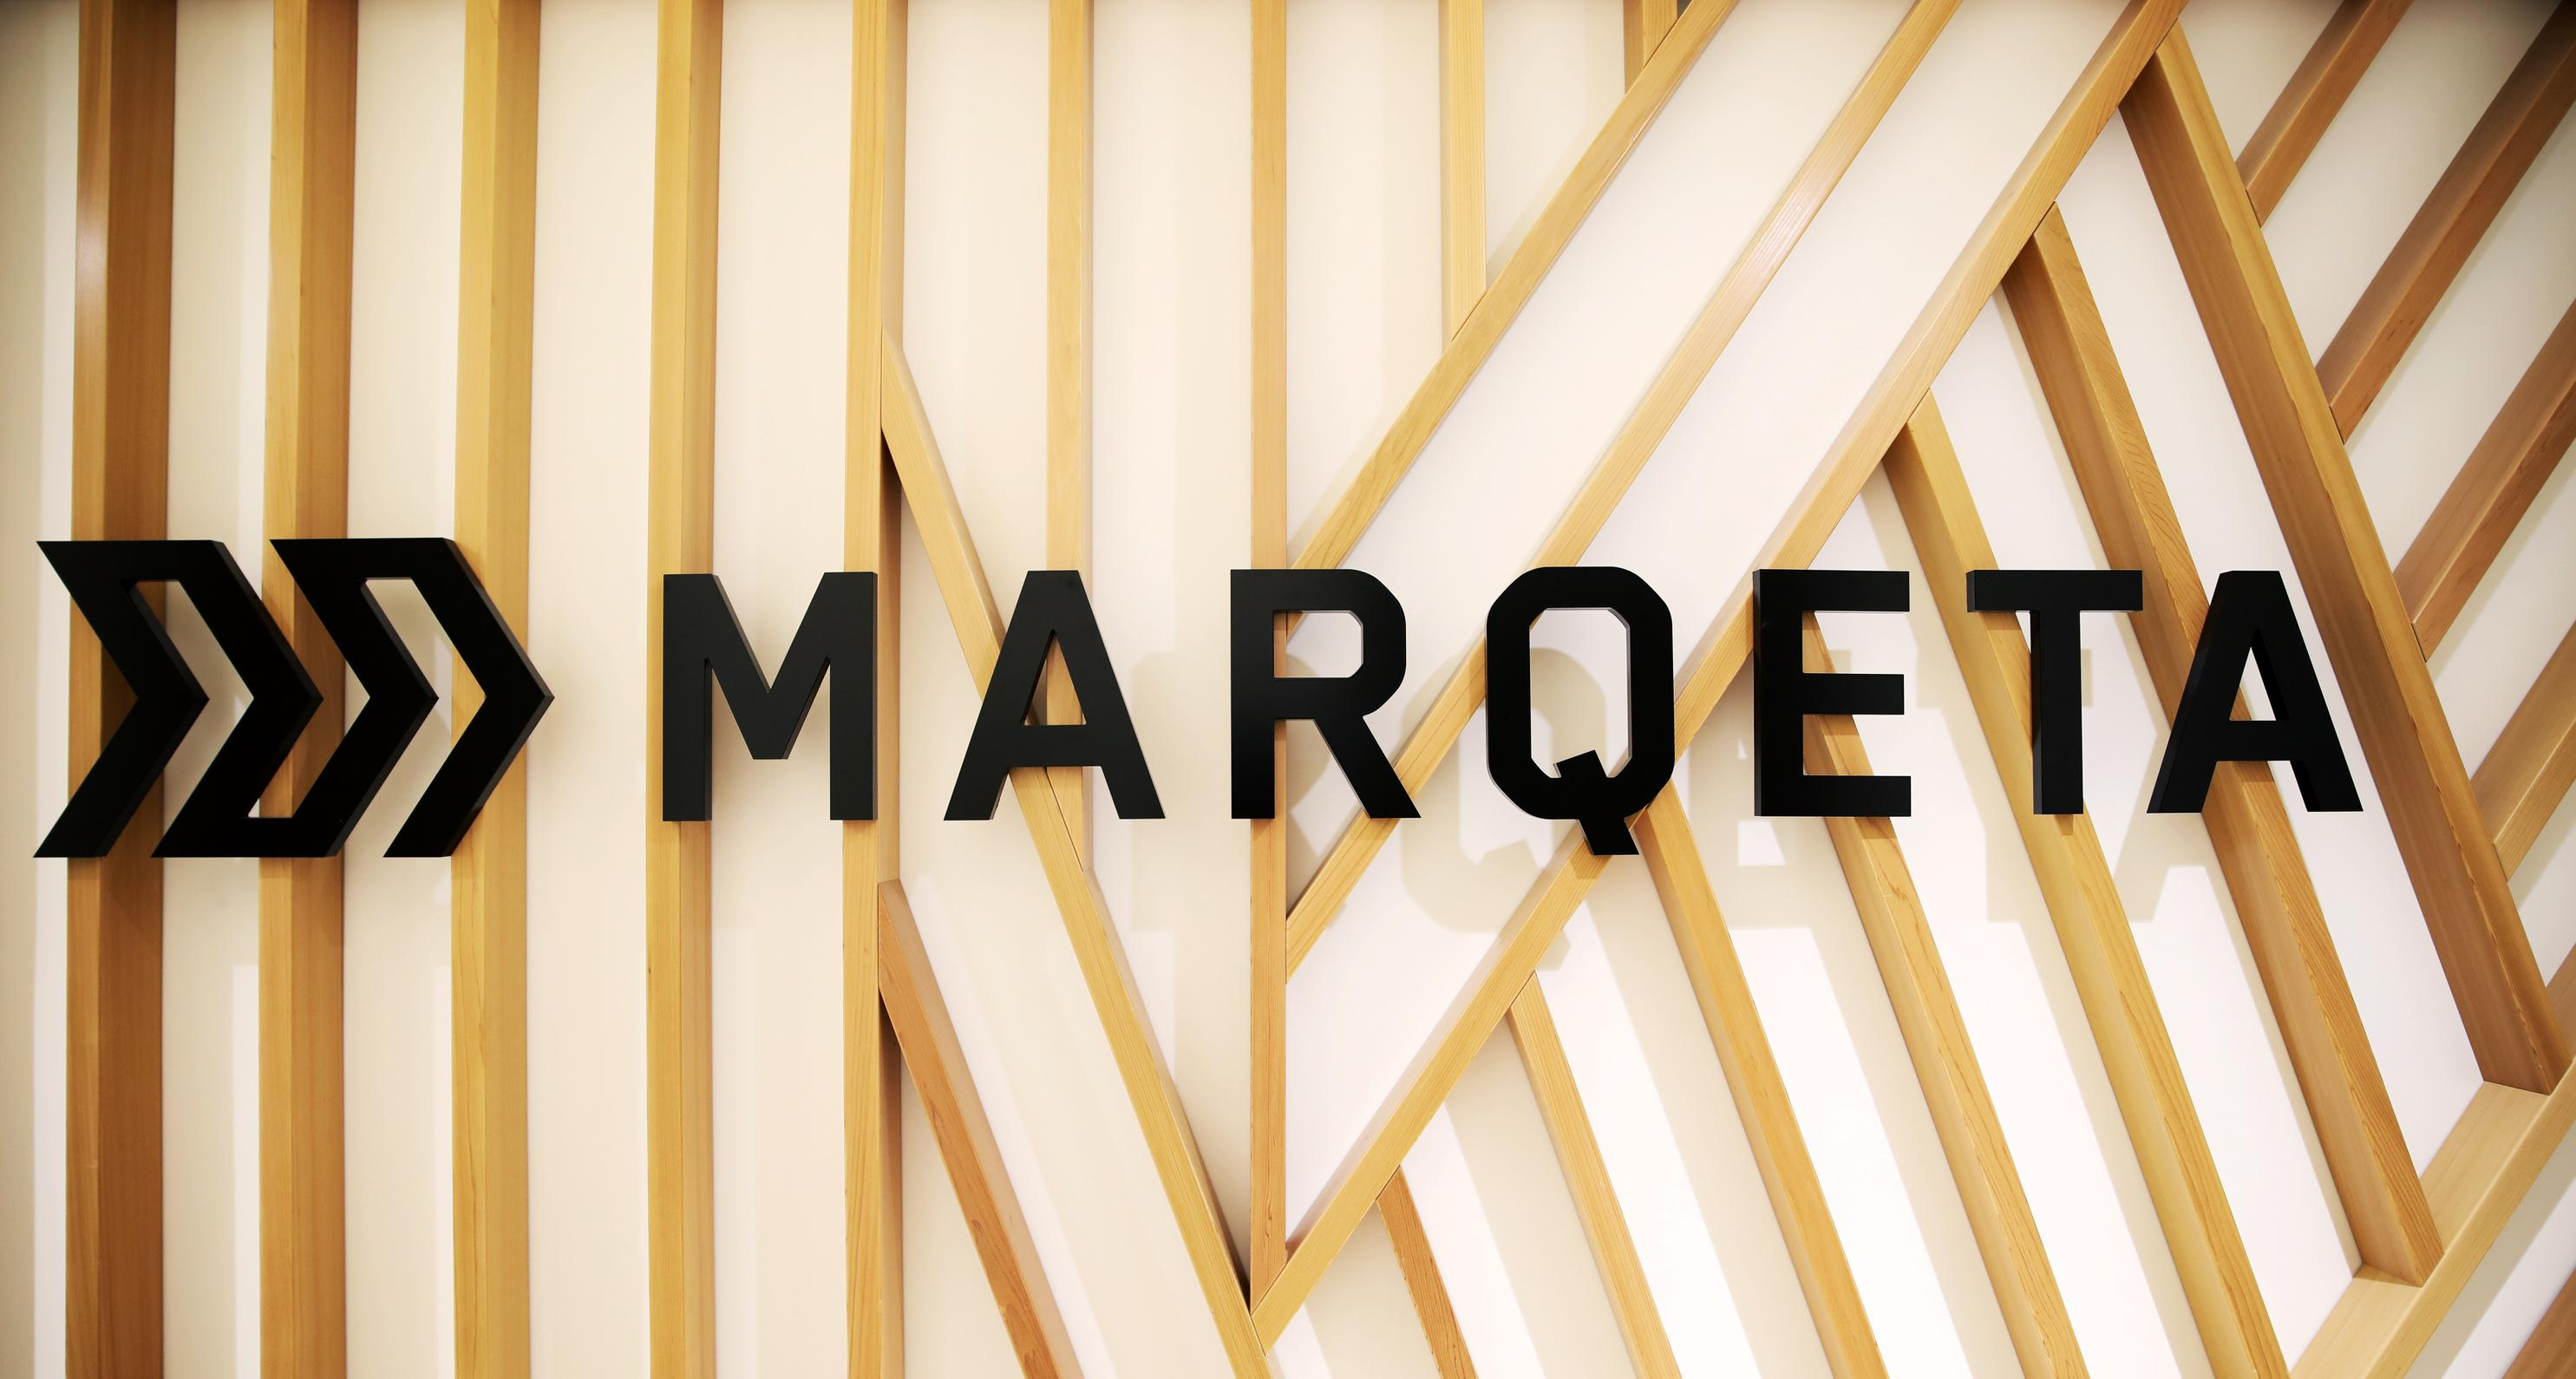 Marqeta's Headquarters is located at 180 Grand Ave., in Oakland, Calif., on Friday, March 29, 2019.